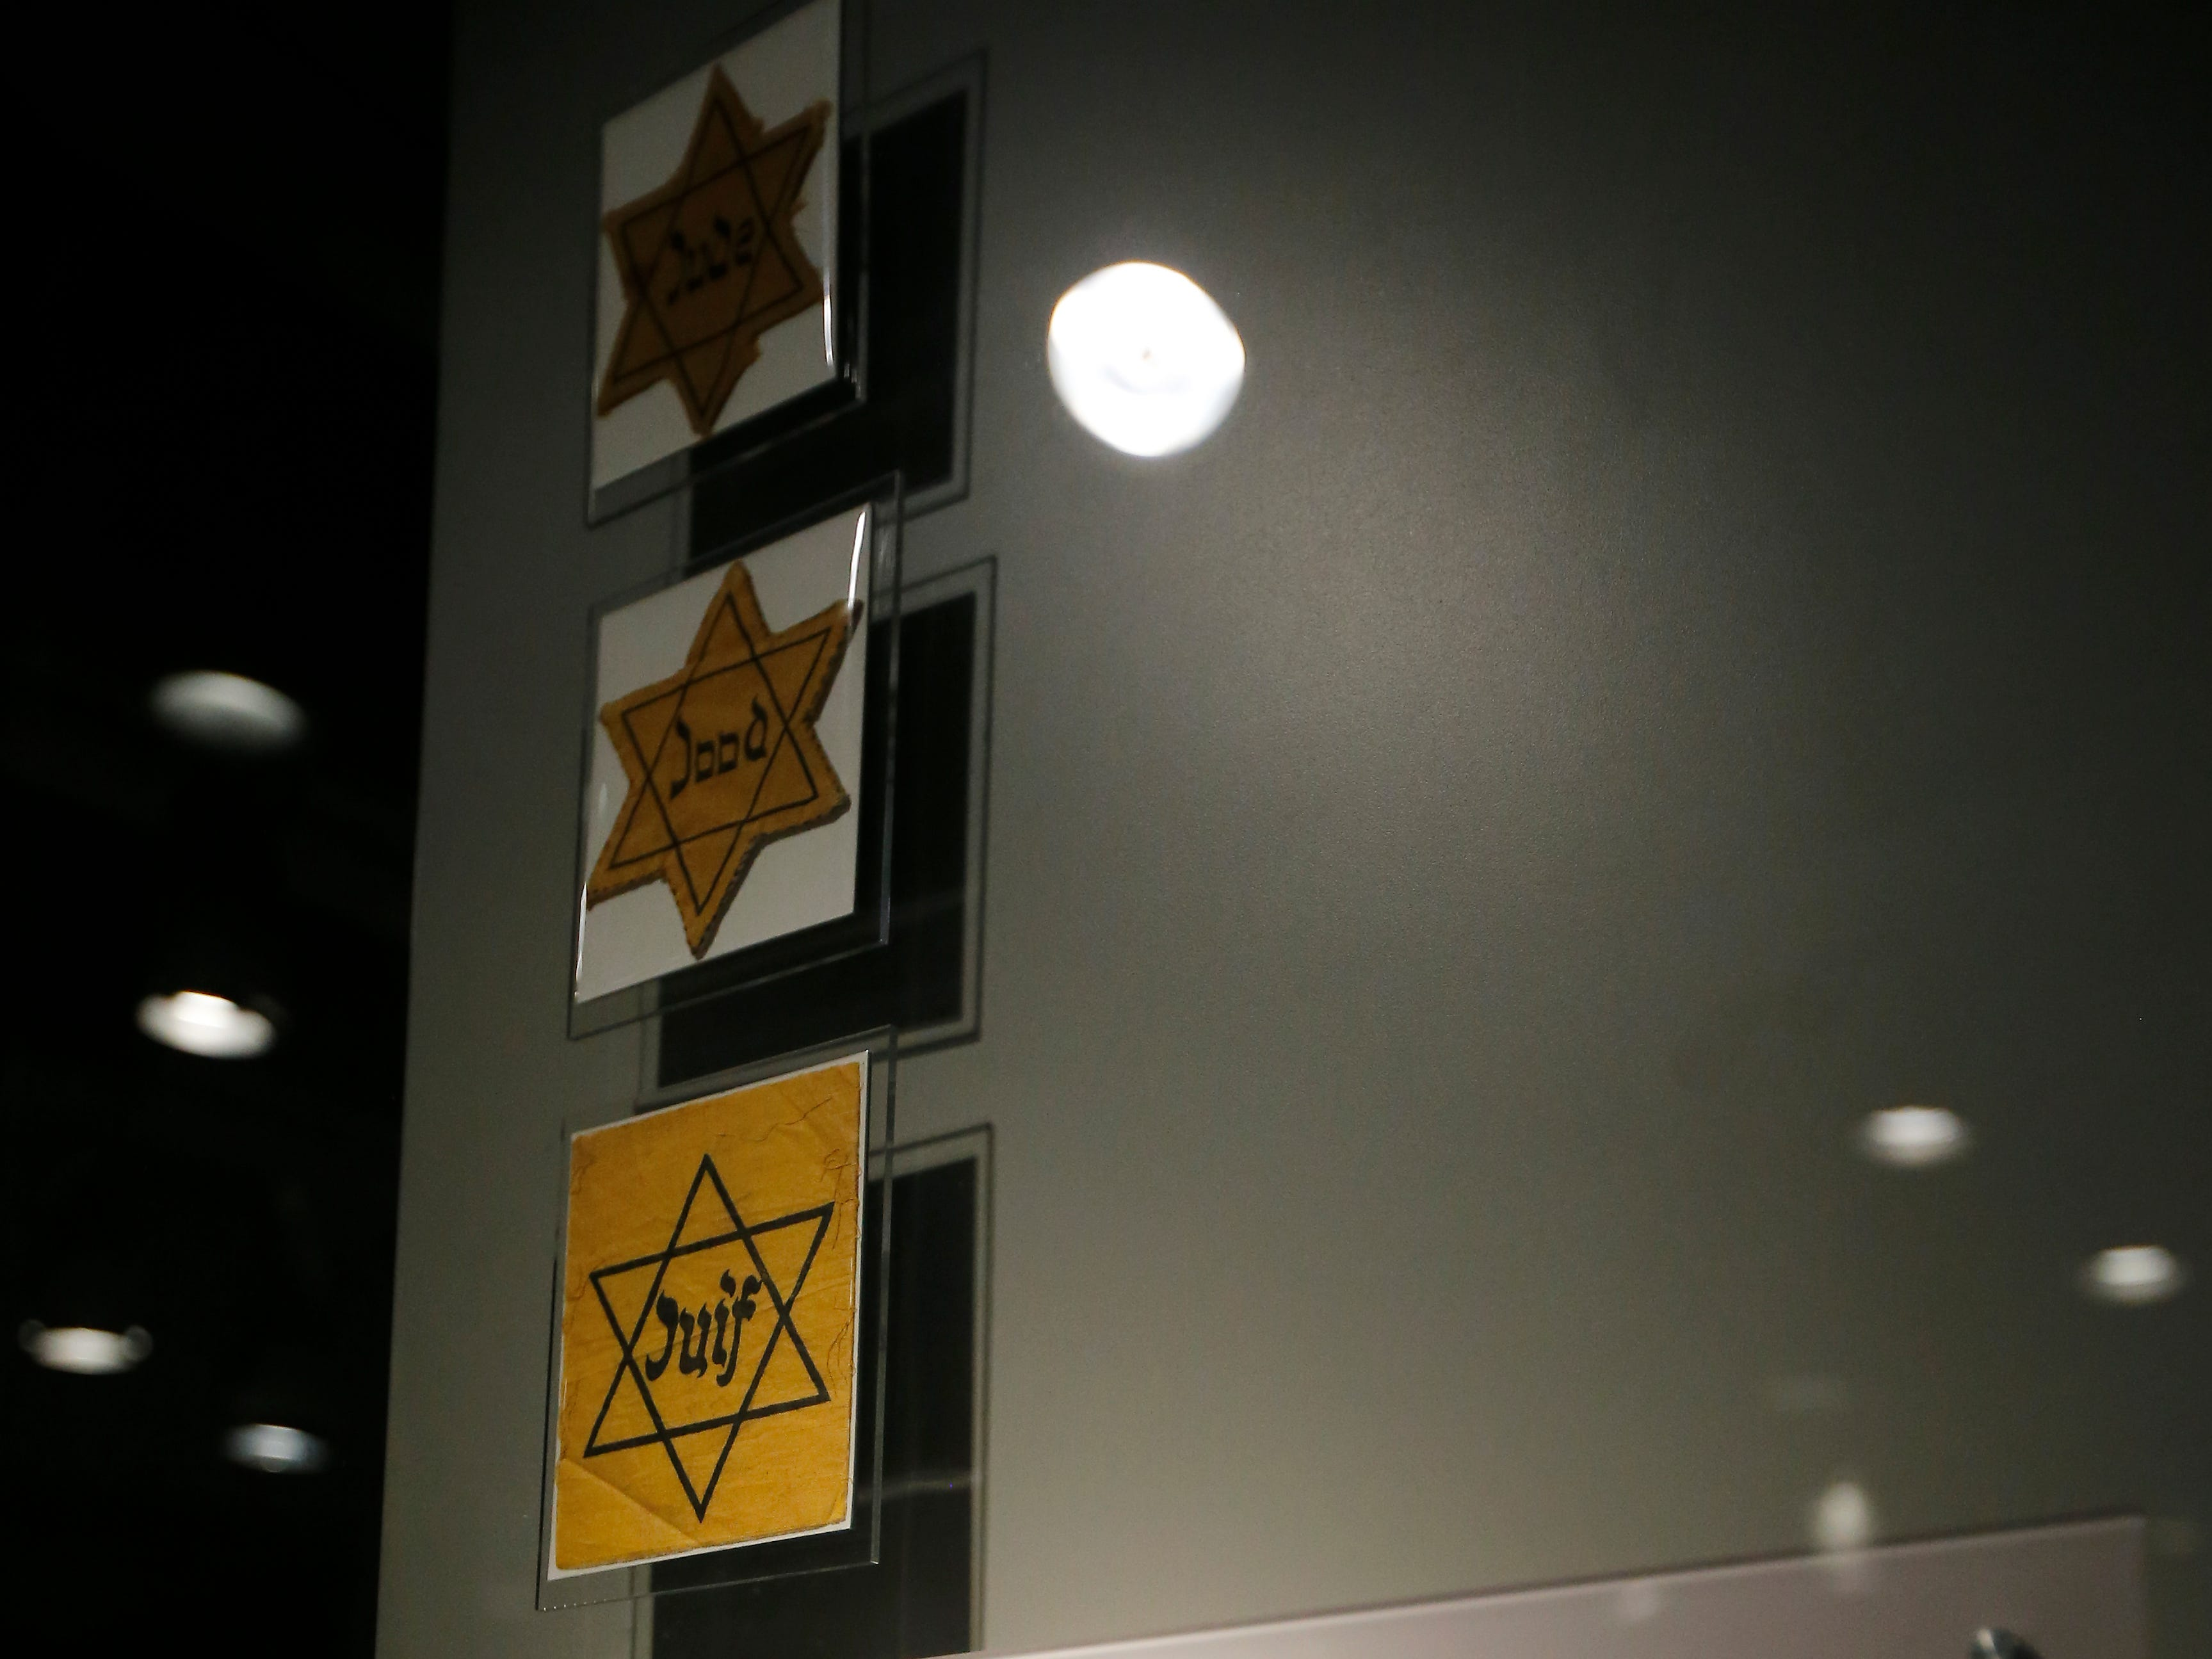 Star badges which were required to be worn by Jewish people in the Netherlands are displayed in the new Holocaust and Humanity Center at the Cincinnati Museum Center in the Queensgate neighborhood of Cincinnati on Tuesday, Jan. 22, 2019. The new exhibit covering the events before, during and after the Holocaust will be open to the public Jan. 27.